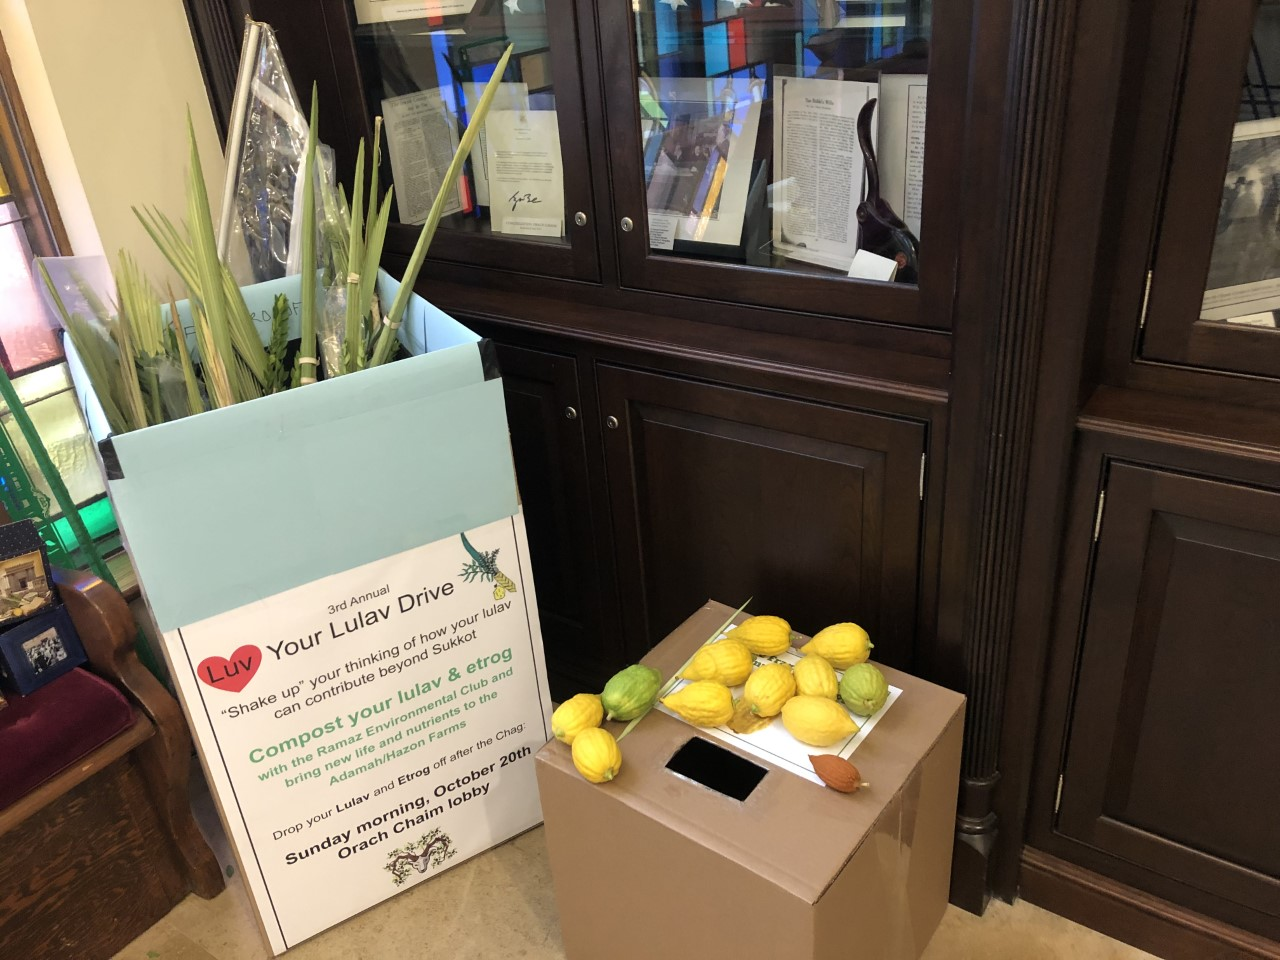 Lulav & Etrog Collection at Congregation Orach Chaim.